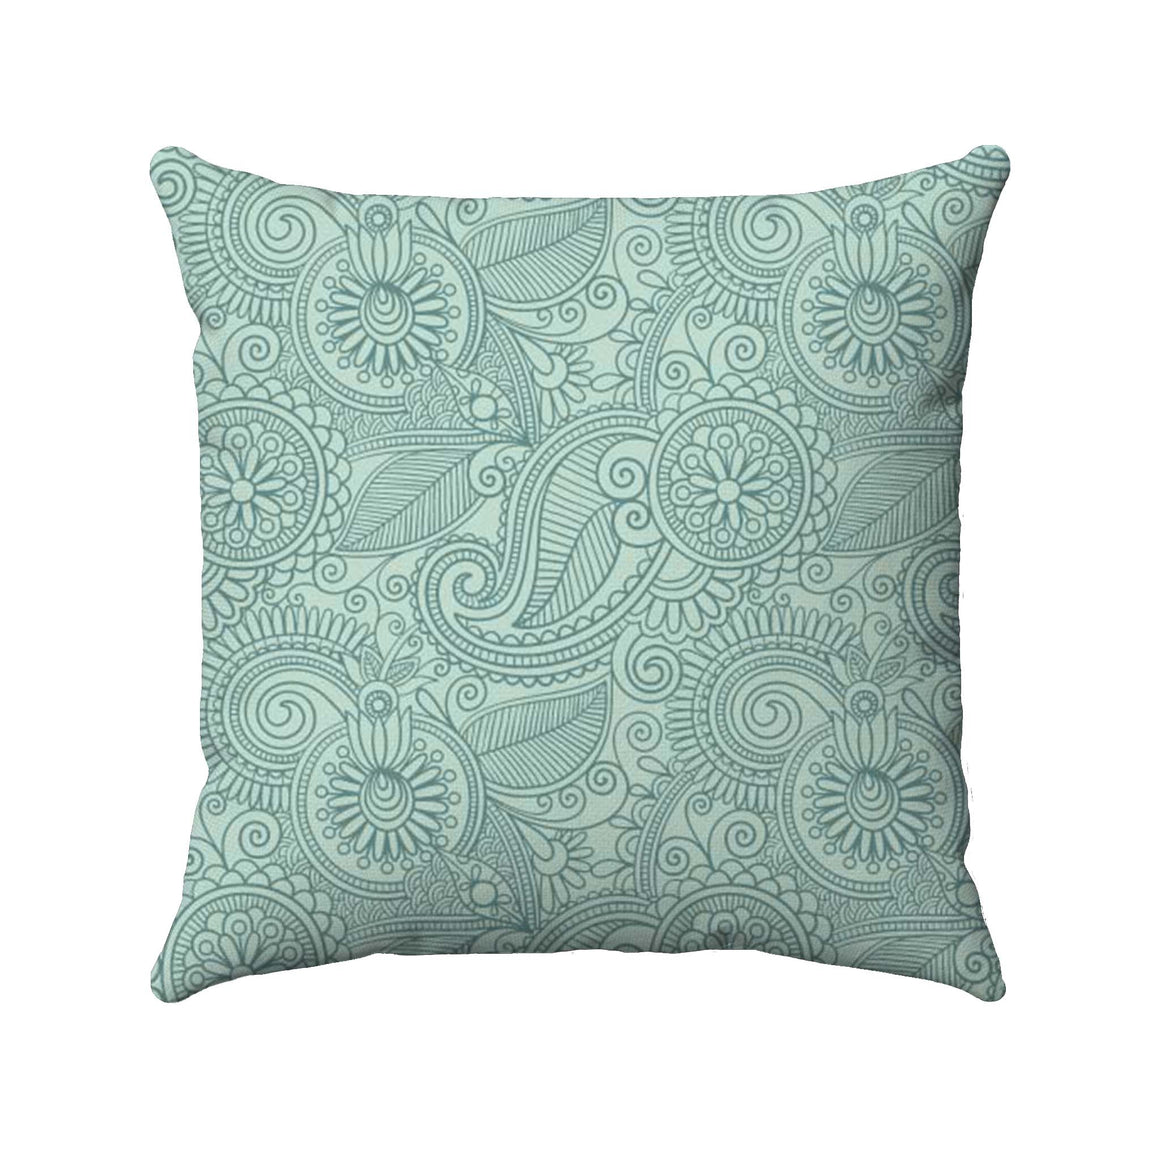 Paisley design with a dark teal color detailed on a bright sea foam background